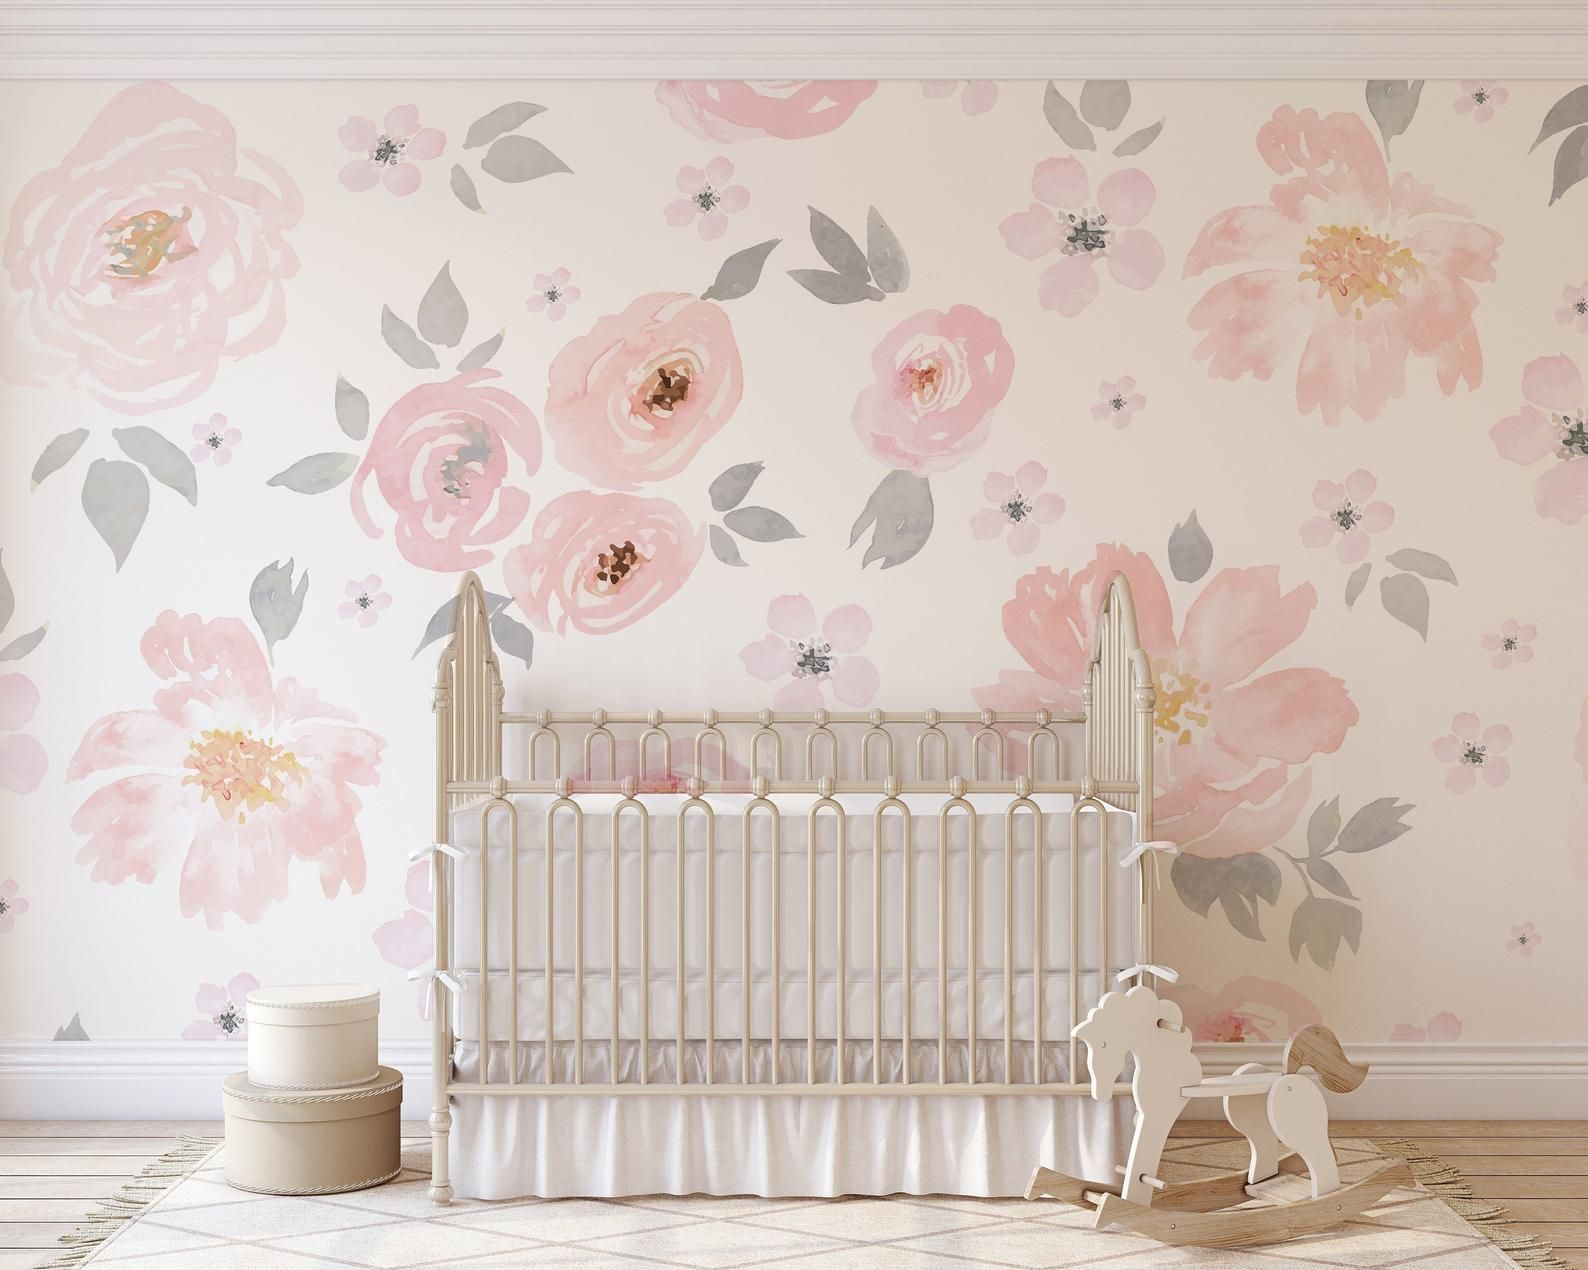 Amara Floral Wallpaper Mural Watercolor Floral Traditional